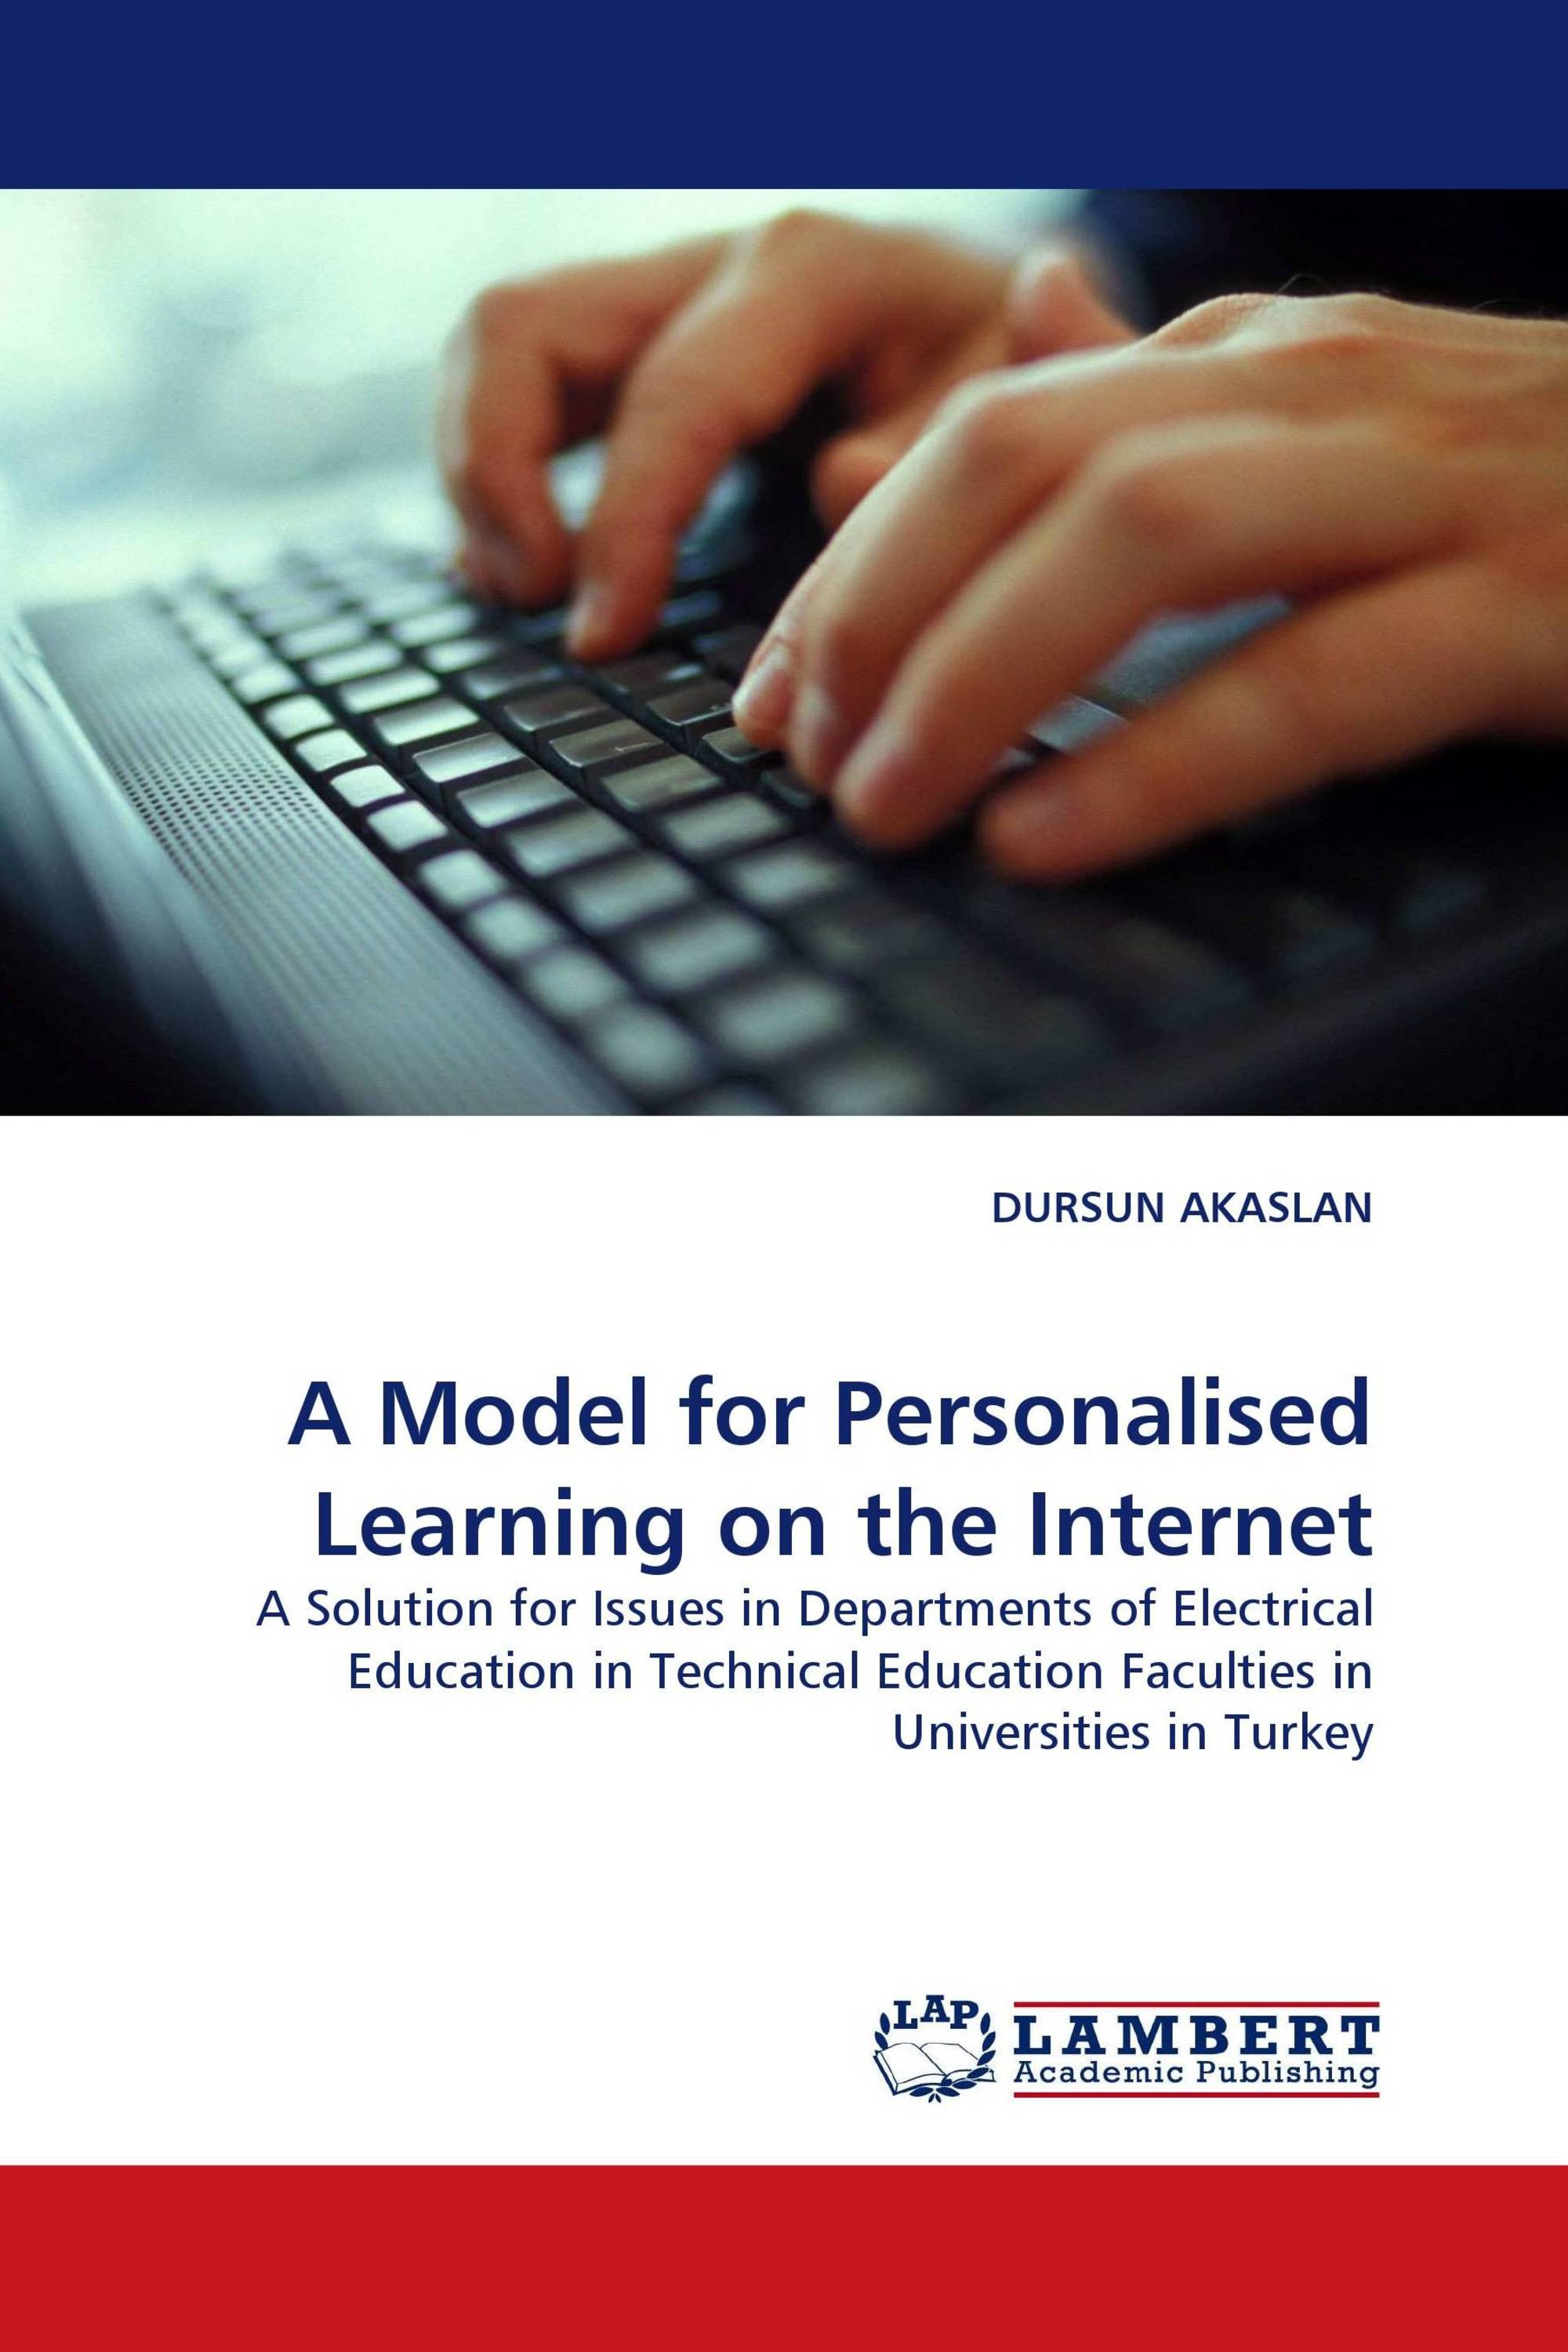 A Model for Personalised Learning on the Internet